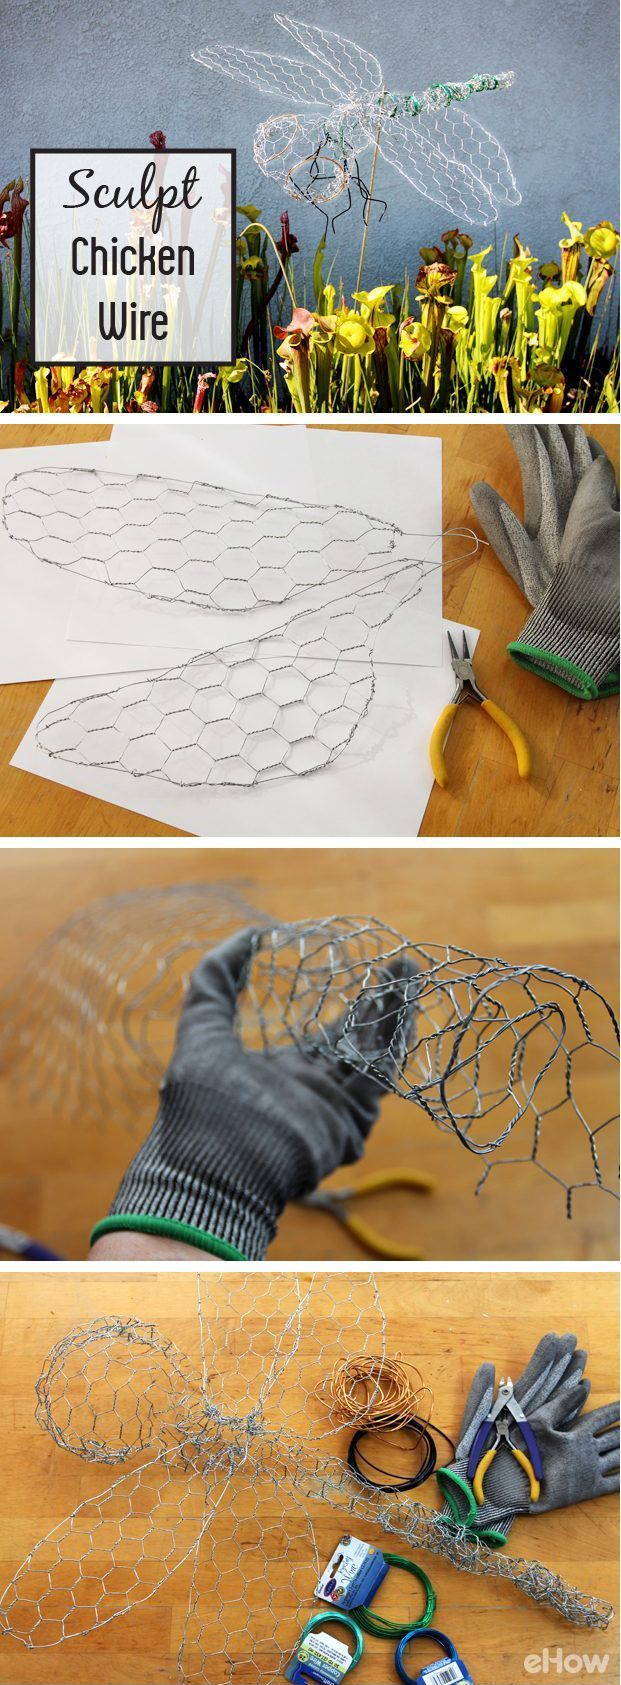 """Sculpting chicken wire is a great way to add fun decor to your yard! Make a dragonfly sculpture out of chicken wire for a decorative garden accent. A dragonfly is relatively easy and inexpensive to make, and it can be """"accessorized"""" in any color palette you choose. Install it by a pond, pool or aquatic garden for extra charm. DIY instructions here: http://www.ehow.com/how_5635113_sculpt-chicken-wire.html?utm_source=pinterest.com&utm_medium=referral&utm_content=inline&utm_campaign=fanpage"""